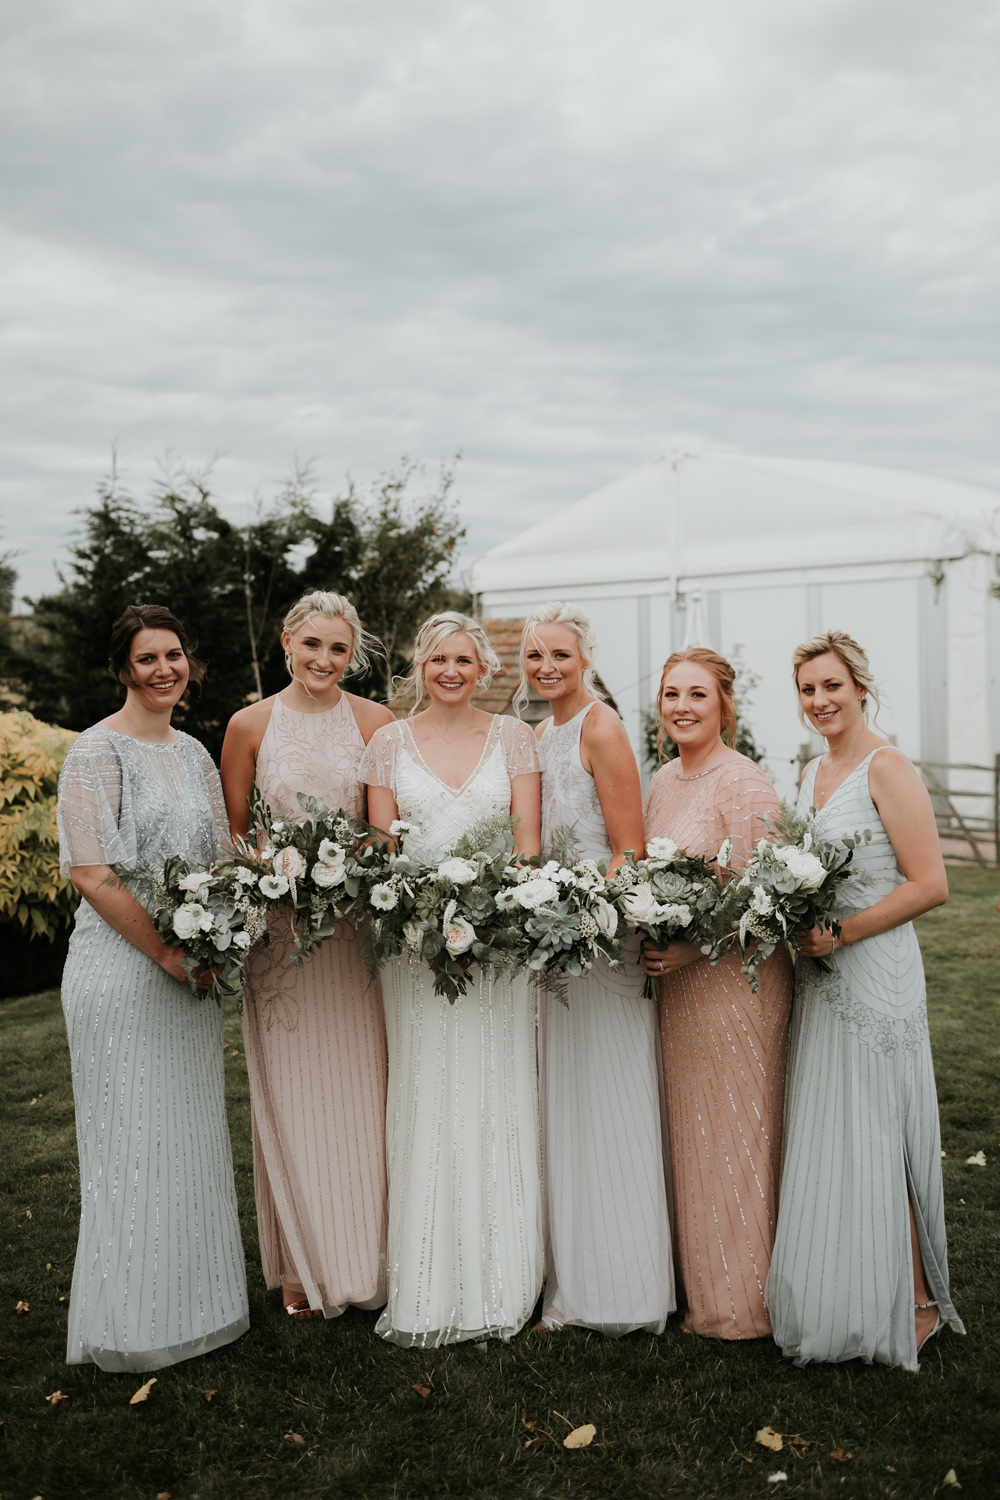 Sequin Pastel Bridesmaid Dress Bridesmaids Dresses Long Maxi Ferry House Inn Wedding Paul Fuller Kent Photography